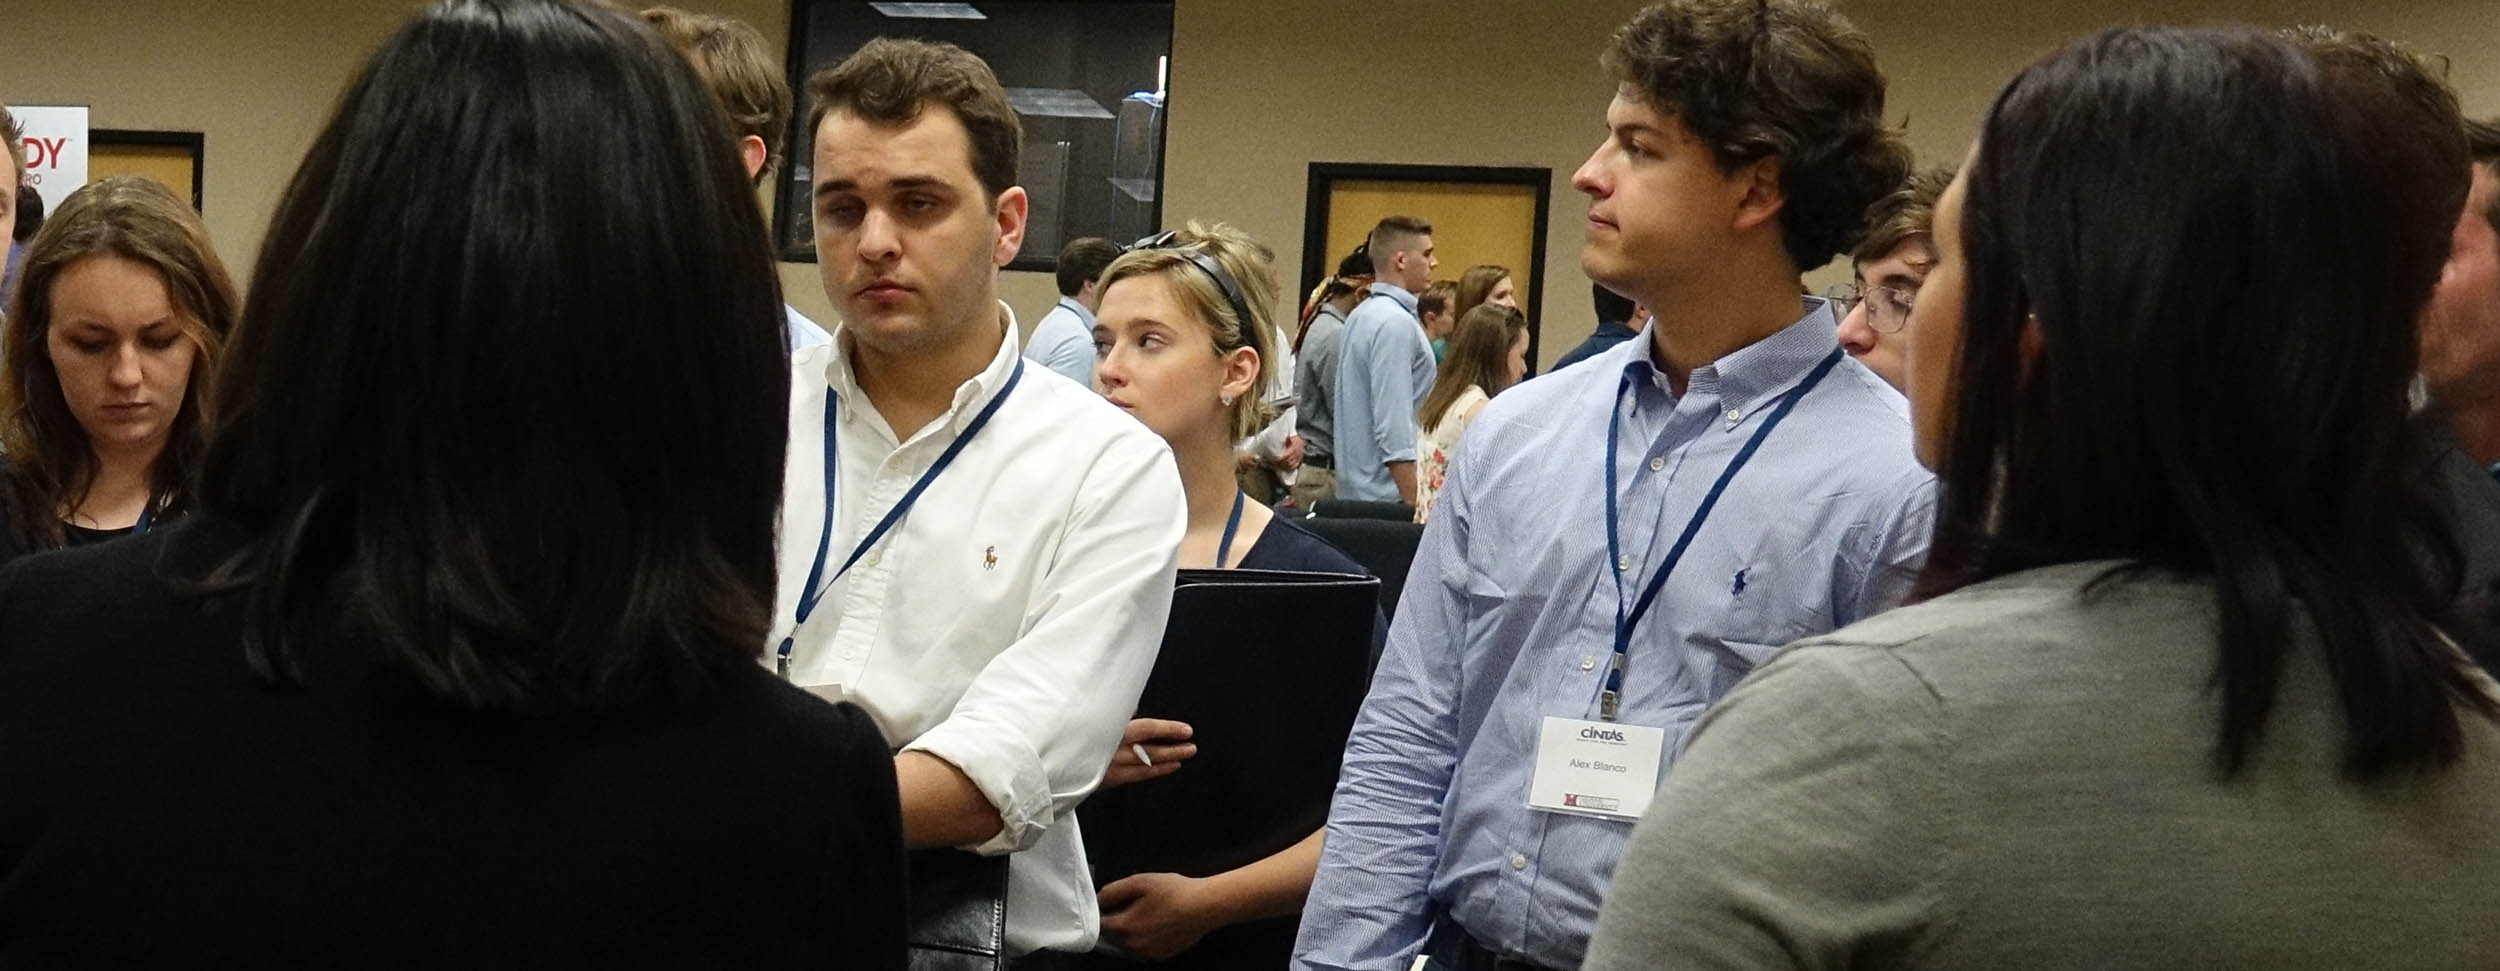 Students listen to Cintas executives talk about their businesses